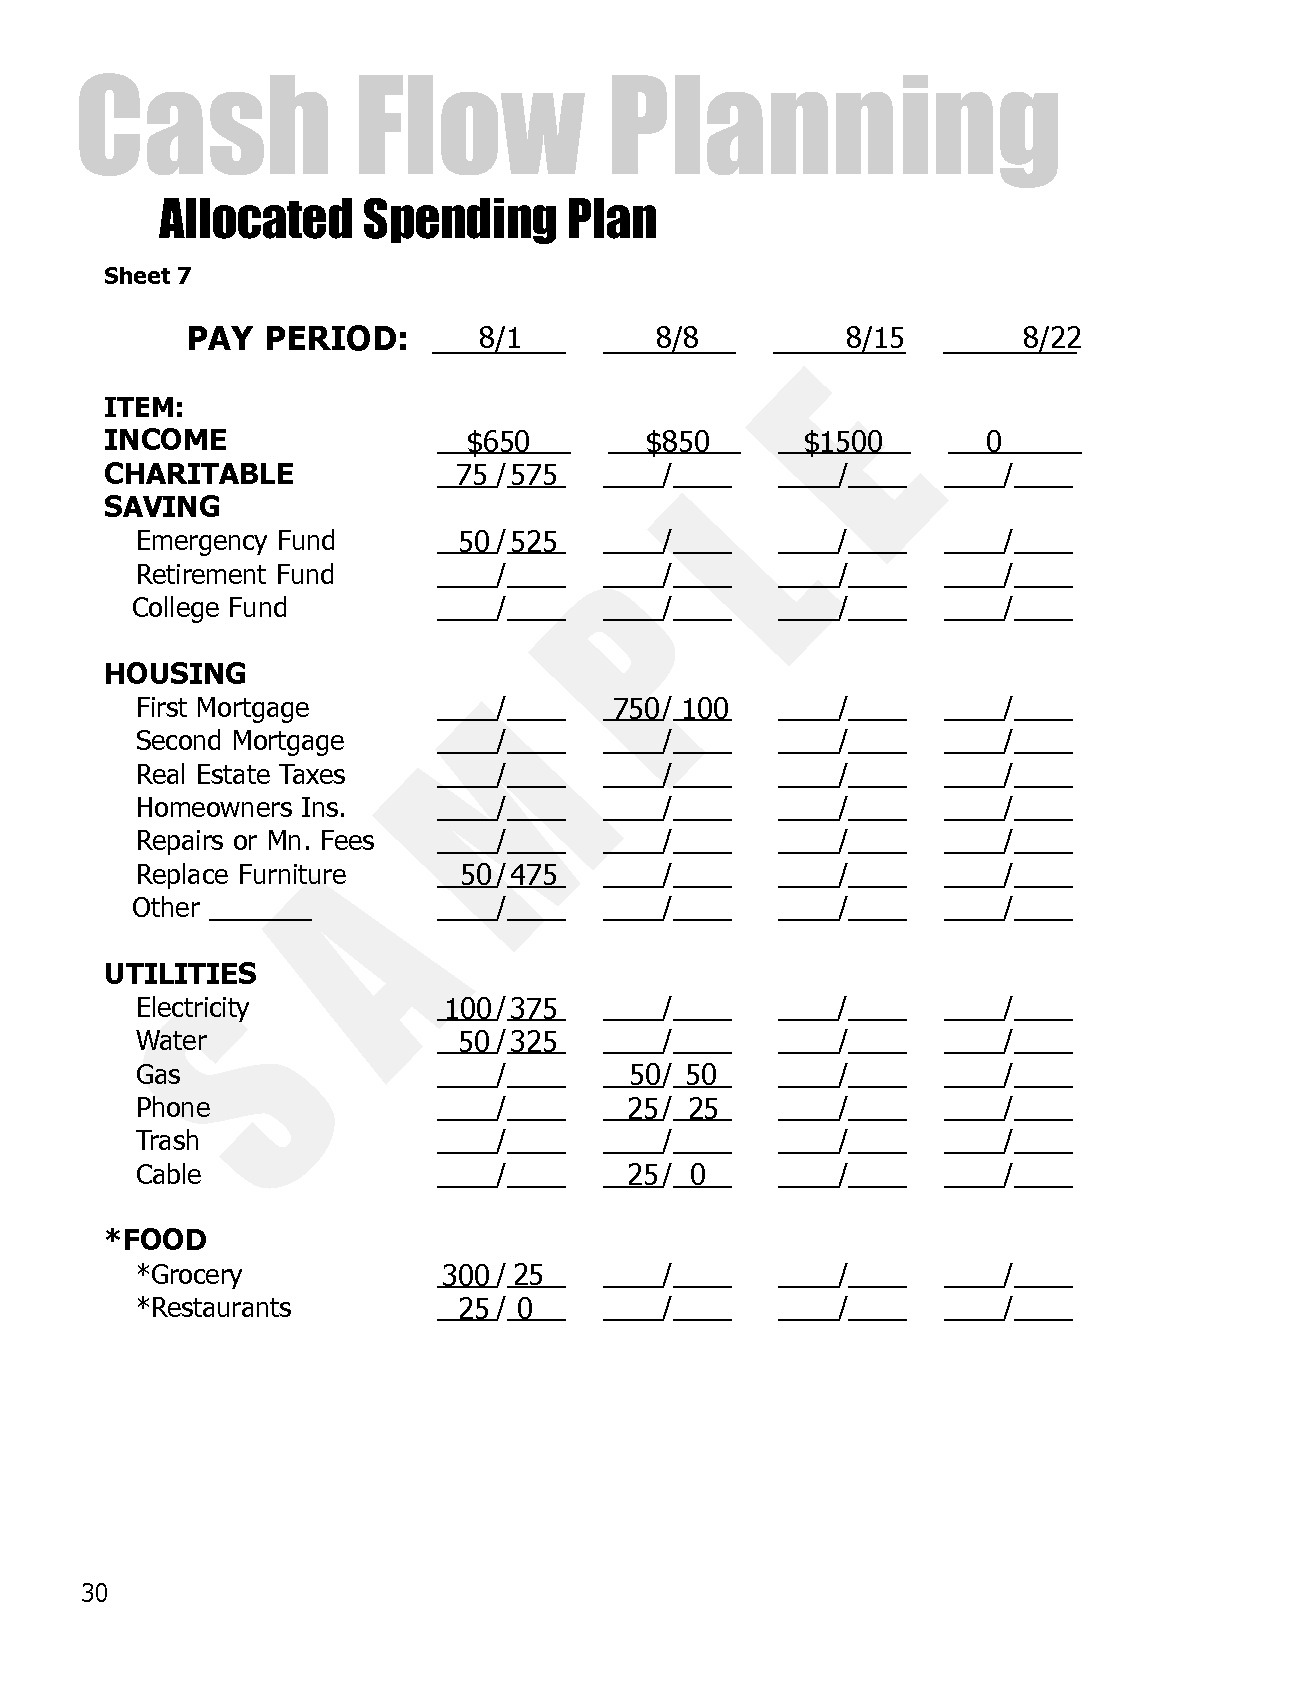 How To Use Dave Ramsey S Allocated Spending Plan